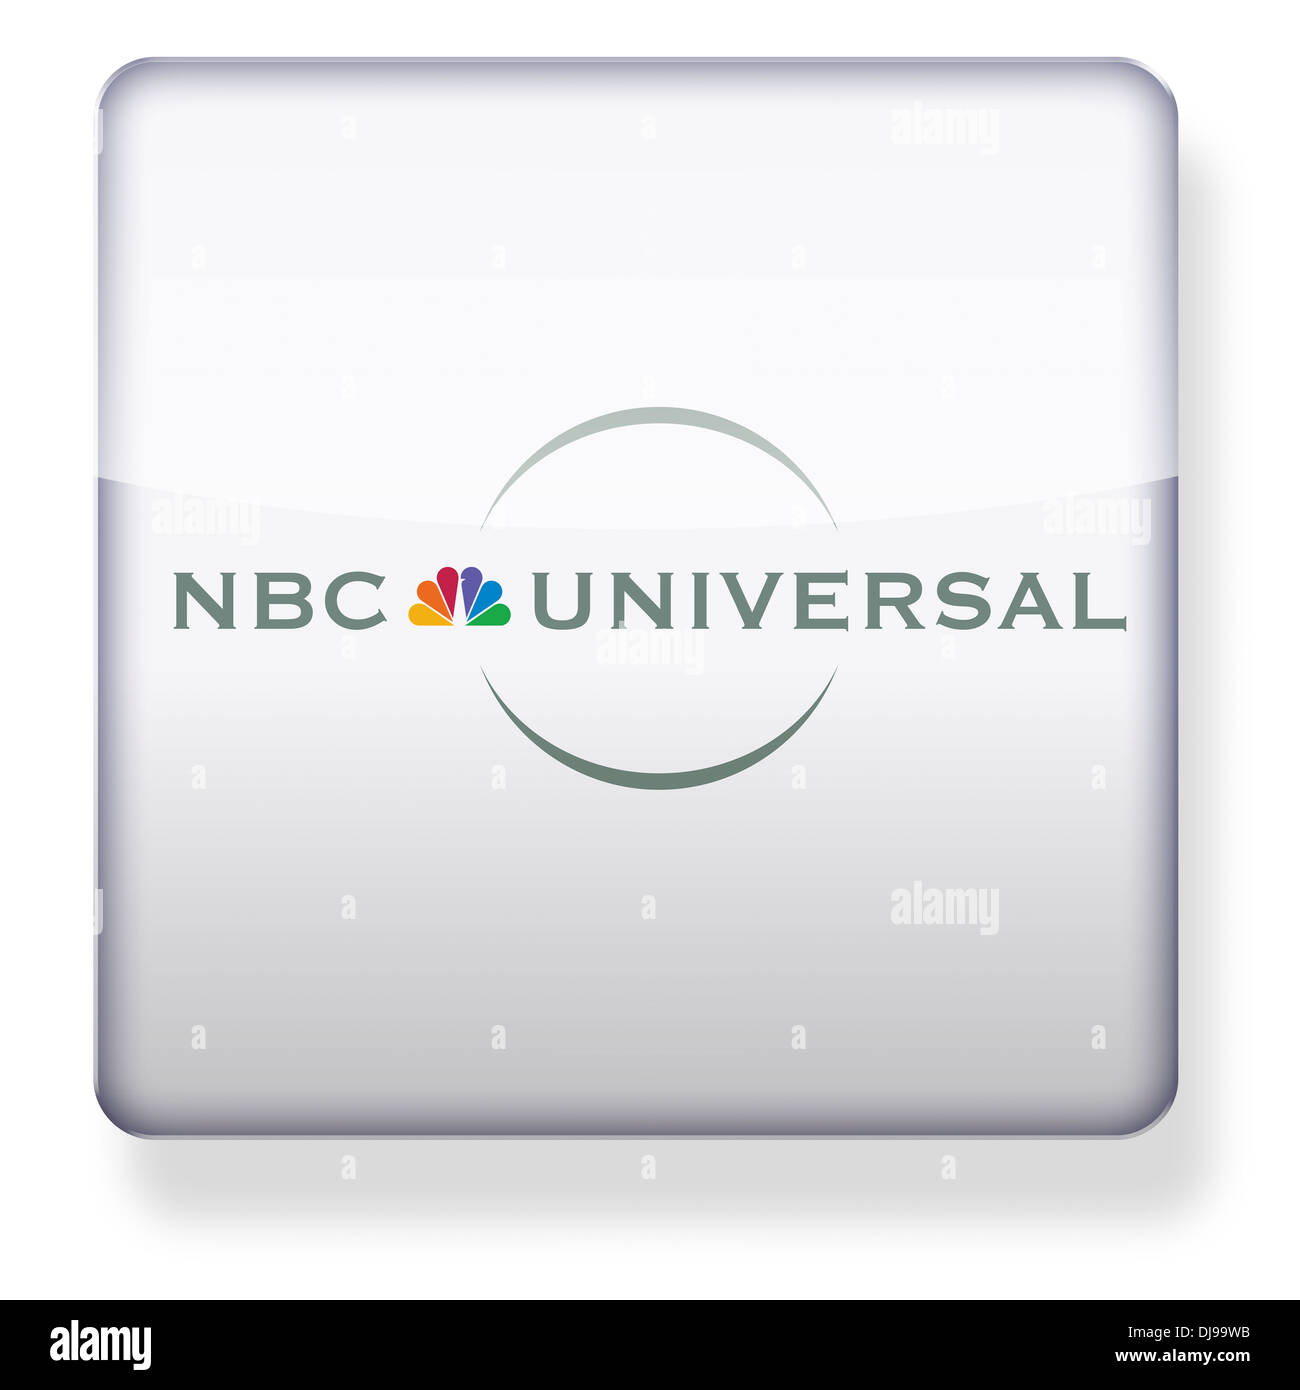 NBC Universal logo as an app icon. Clipping path included. - Stock Image